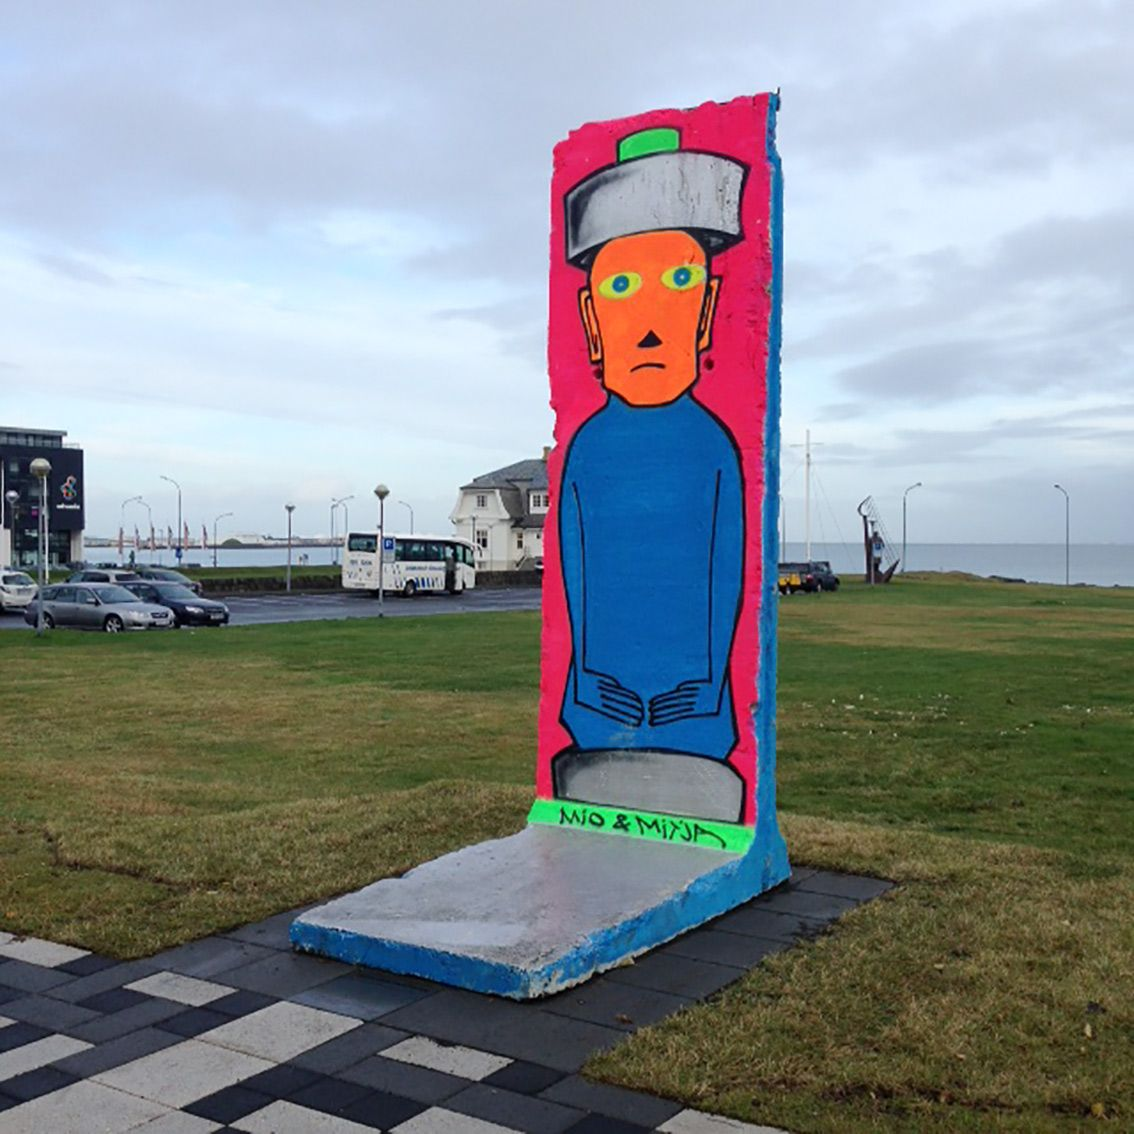 Art in public space: Coast line